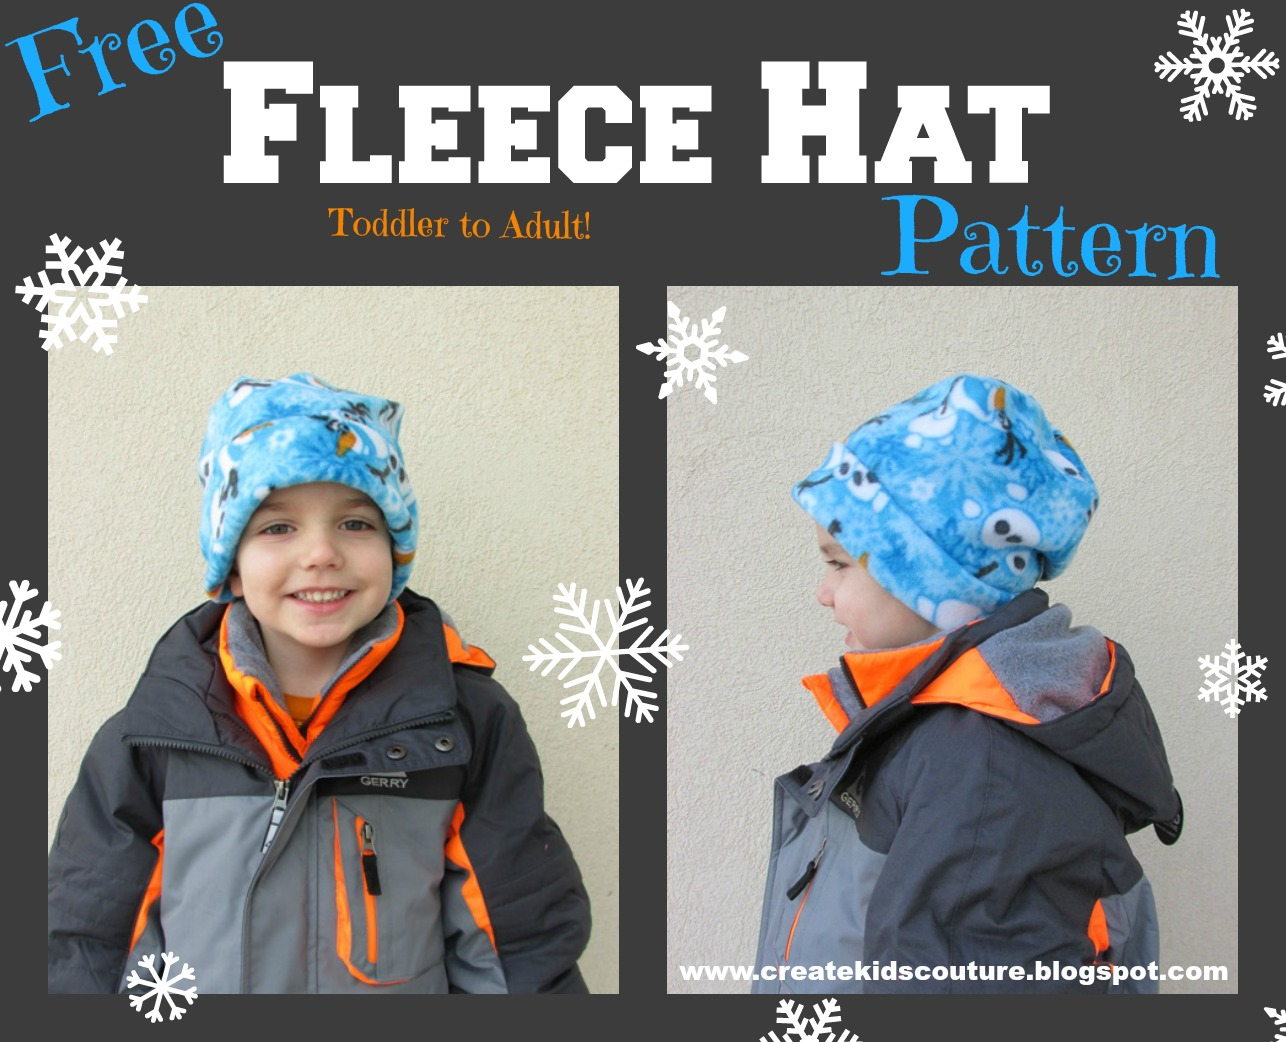 Create kids couture quick and easy fleece hat pattern quick and easy fleece hat pattern pronofoot35fo Choice Image